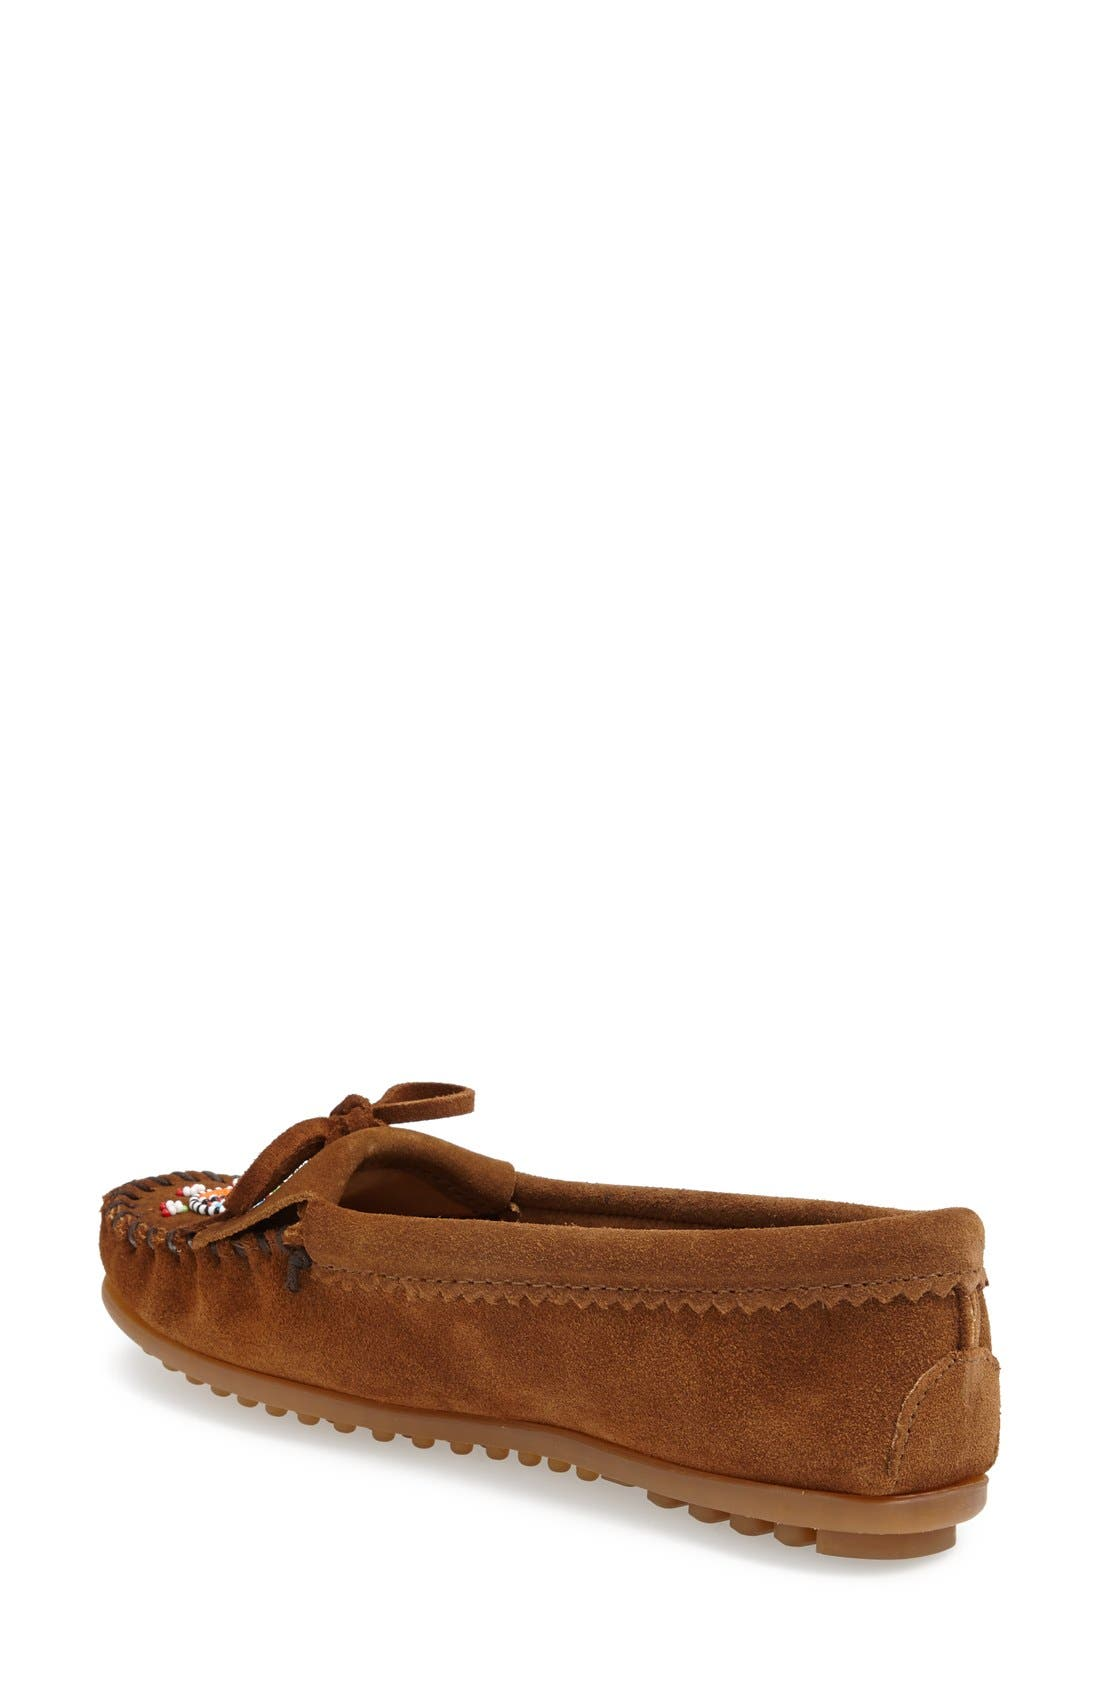 'Me to We Artisans - Kilty' Beaded Moccasin,                             Alternate thumbnail 2, color,                             Dusty Brown